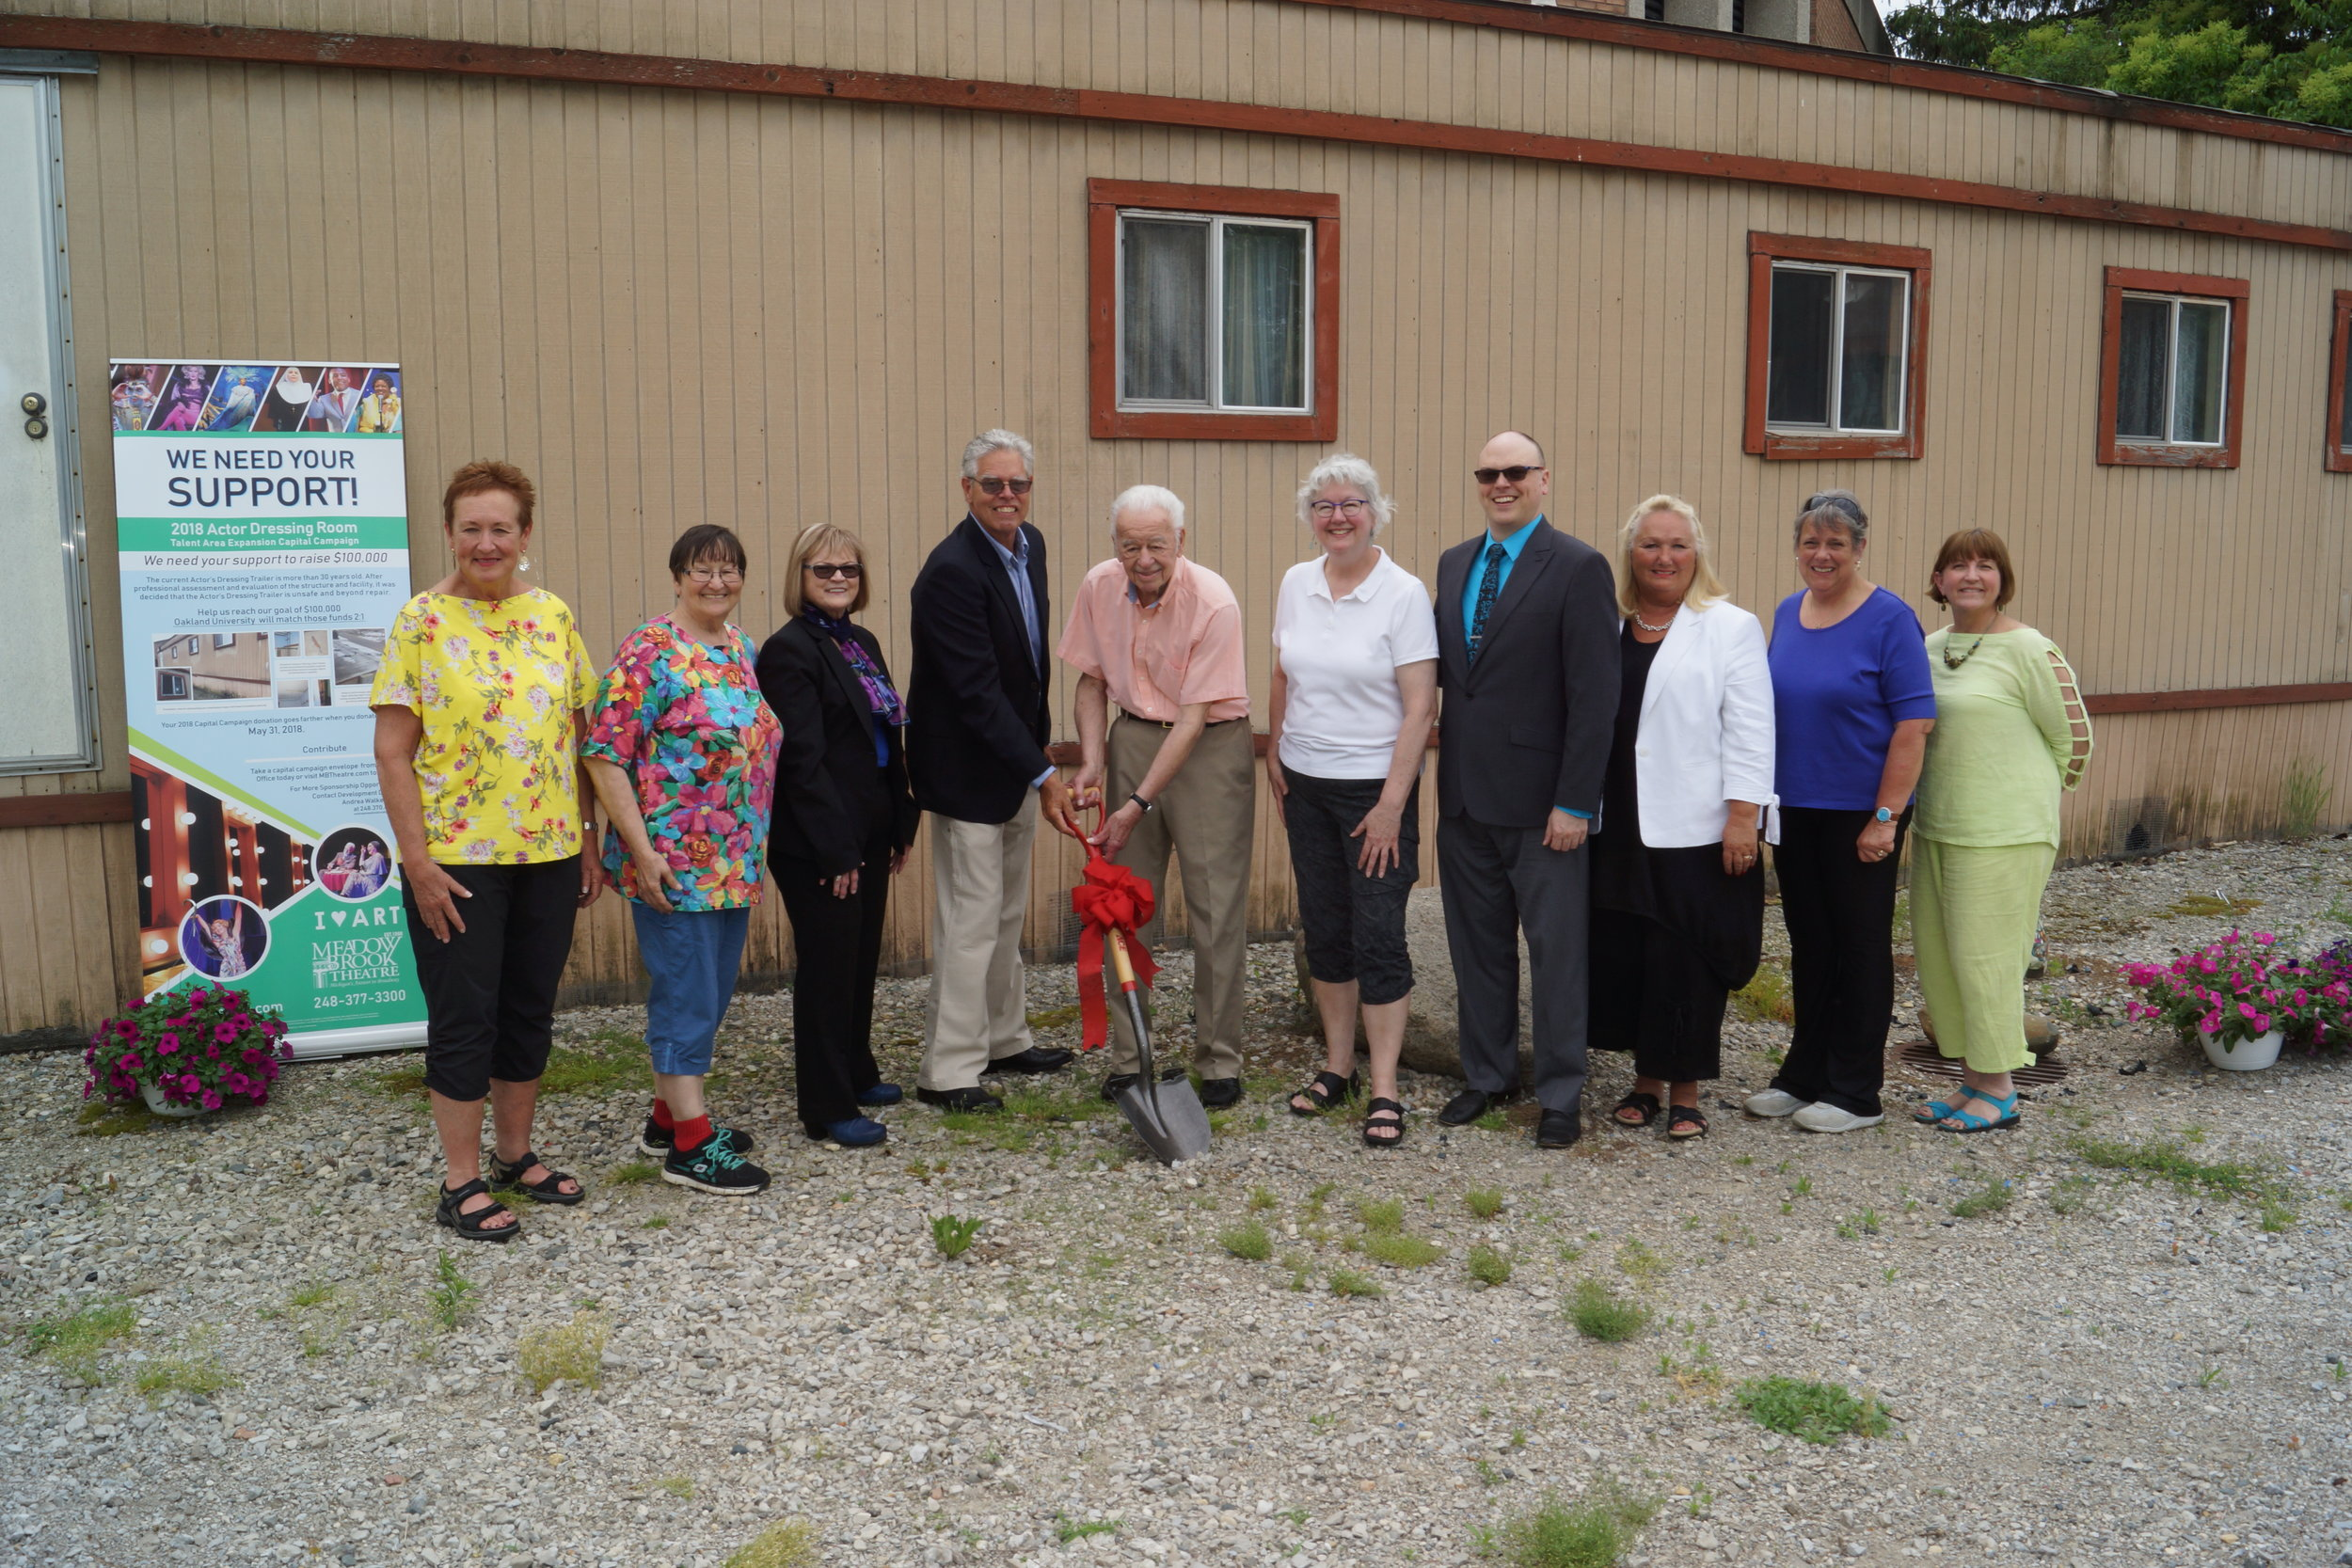 Notable MBT donors gather with staff to break ground on the construction of a new actors's dressing room.